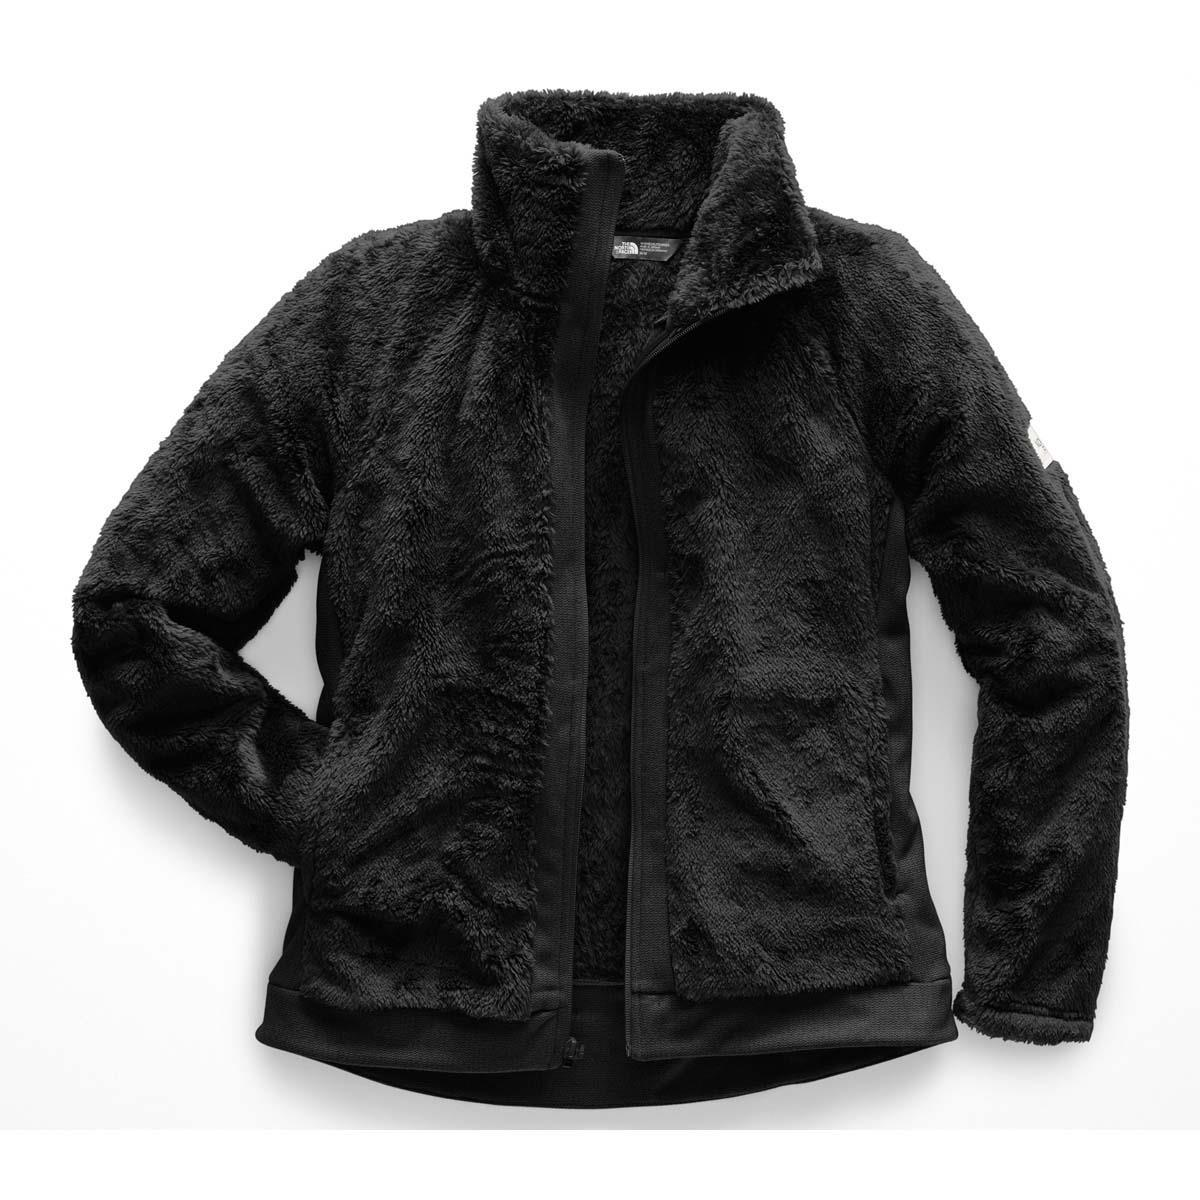 5456475b888c The North Face Furry Fleece Full Zip Womens. Loading zoom